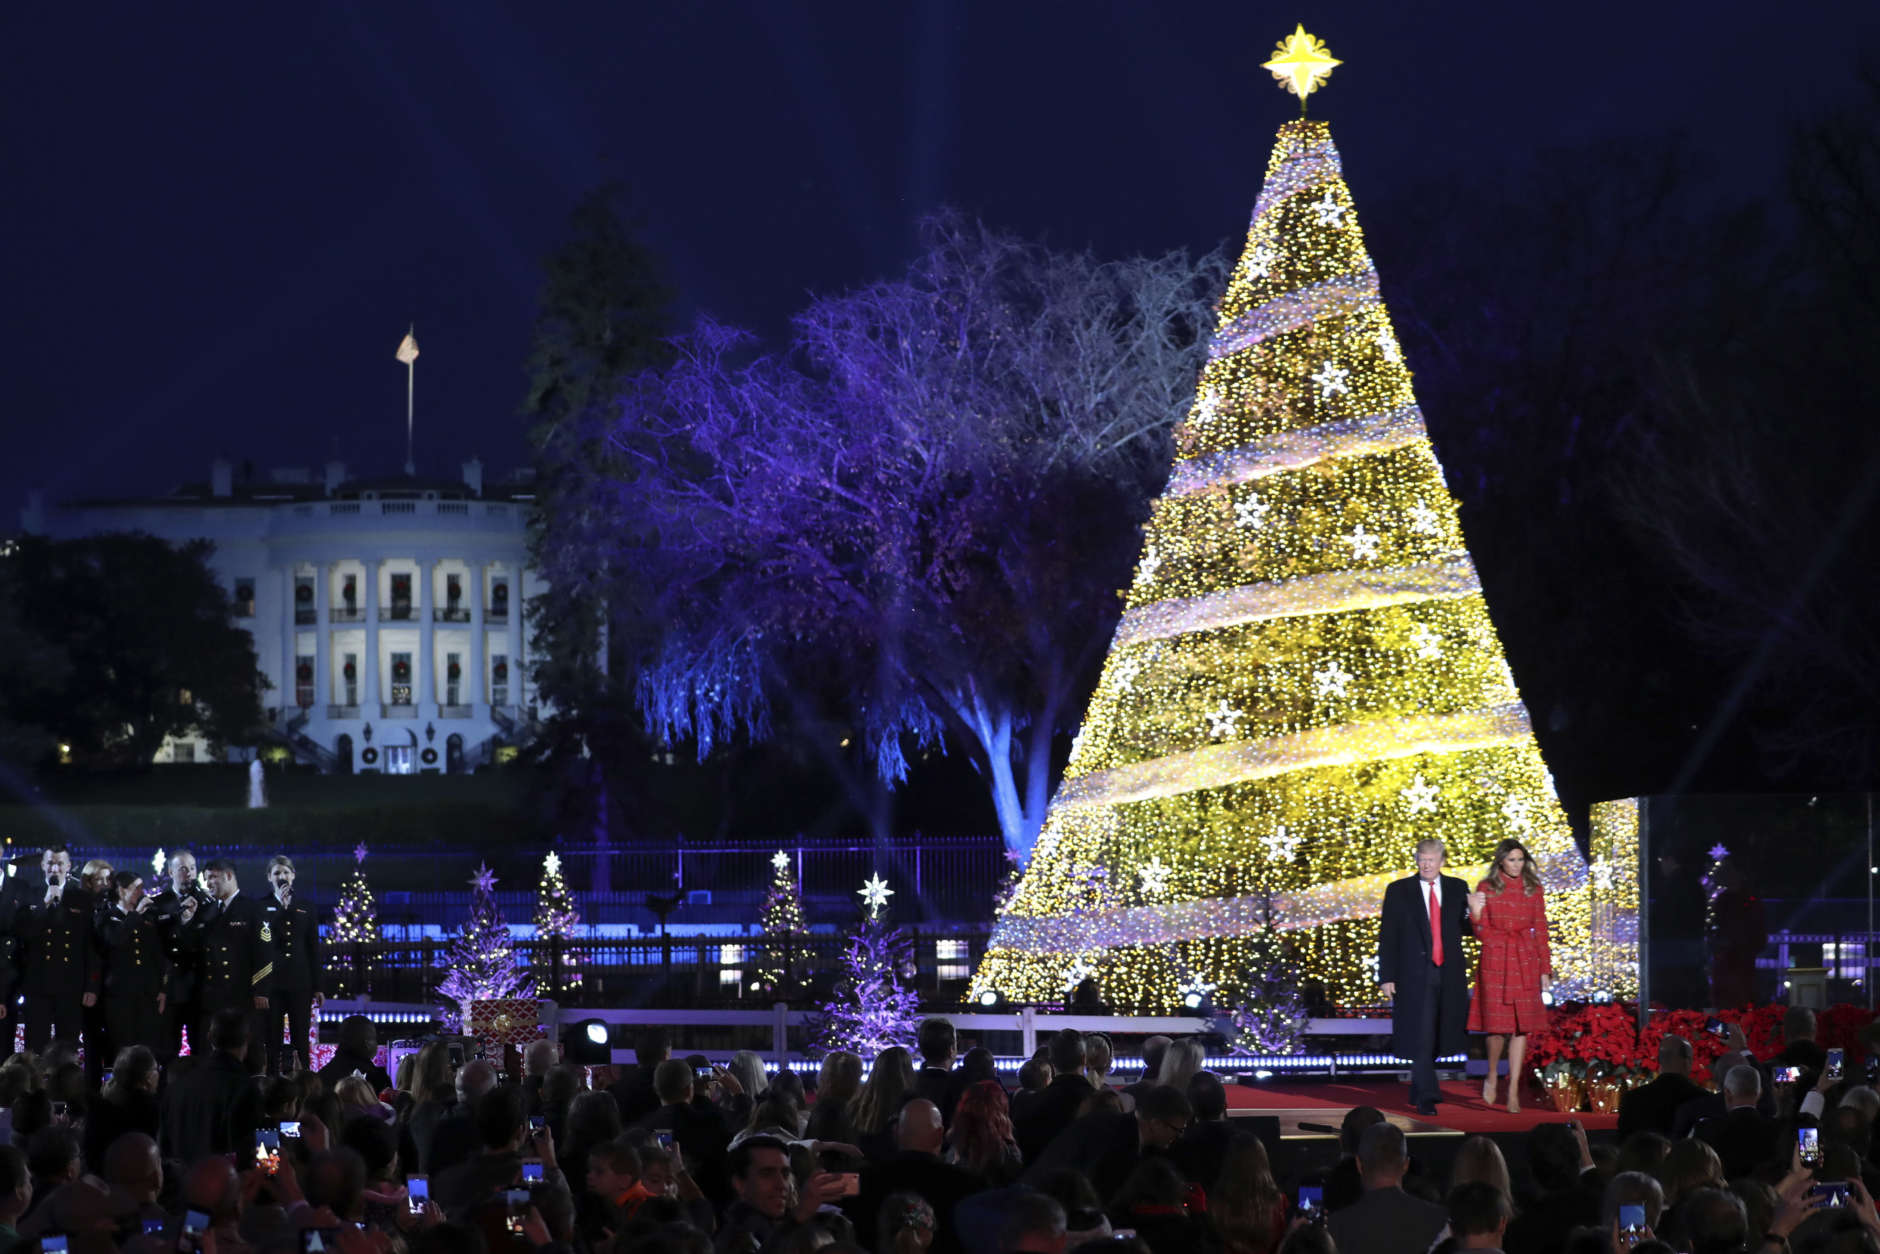 President Donald Trump and first lady Melania Trump stand after lighting the 2017 National Christmas Tree on the Ellipse near the White House, Thursday, Nov. 30, 2017, in Washington. (AP Photo/Andrew Harnik)